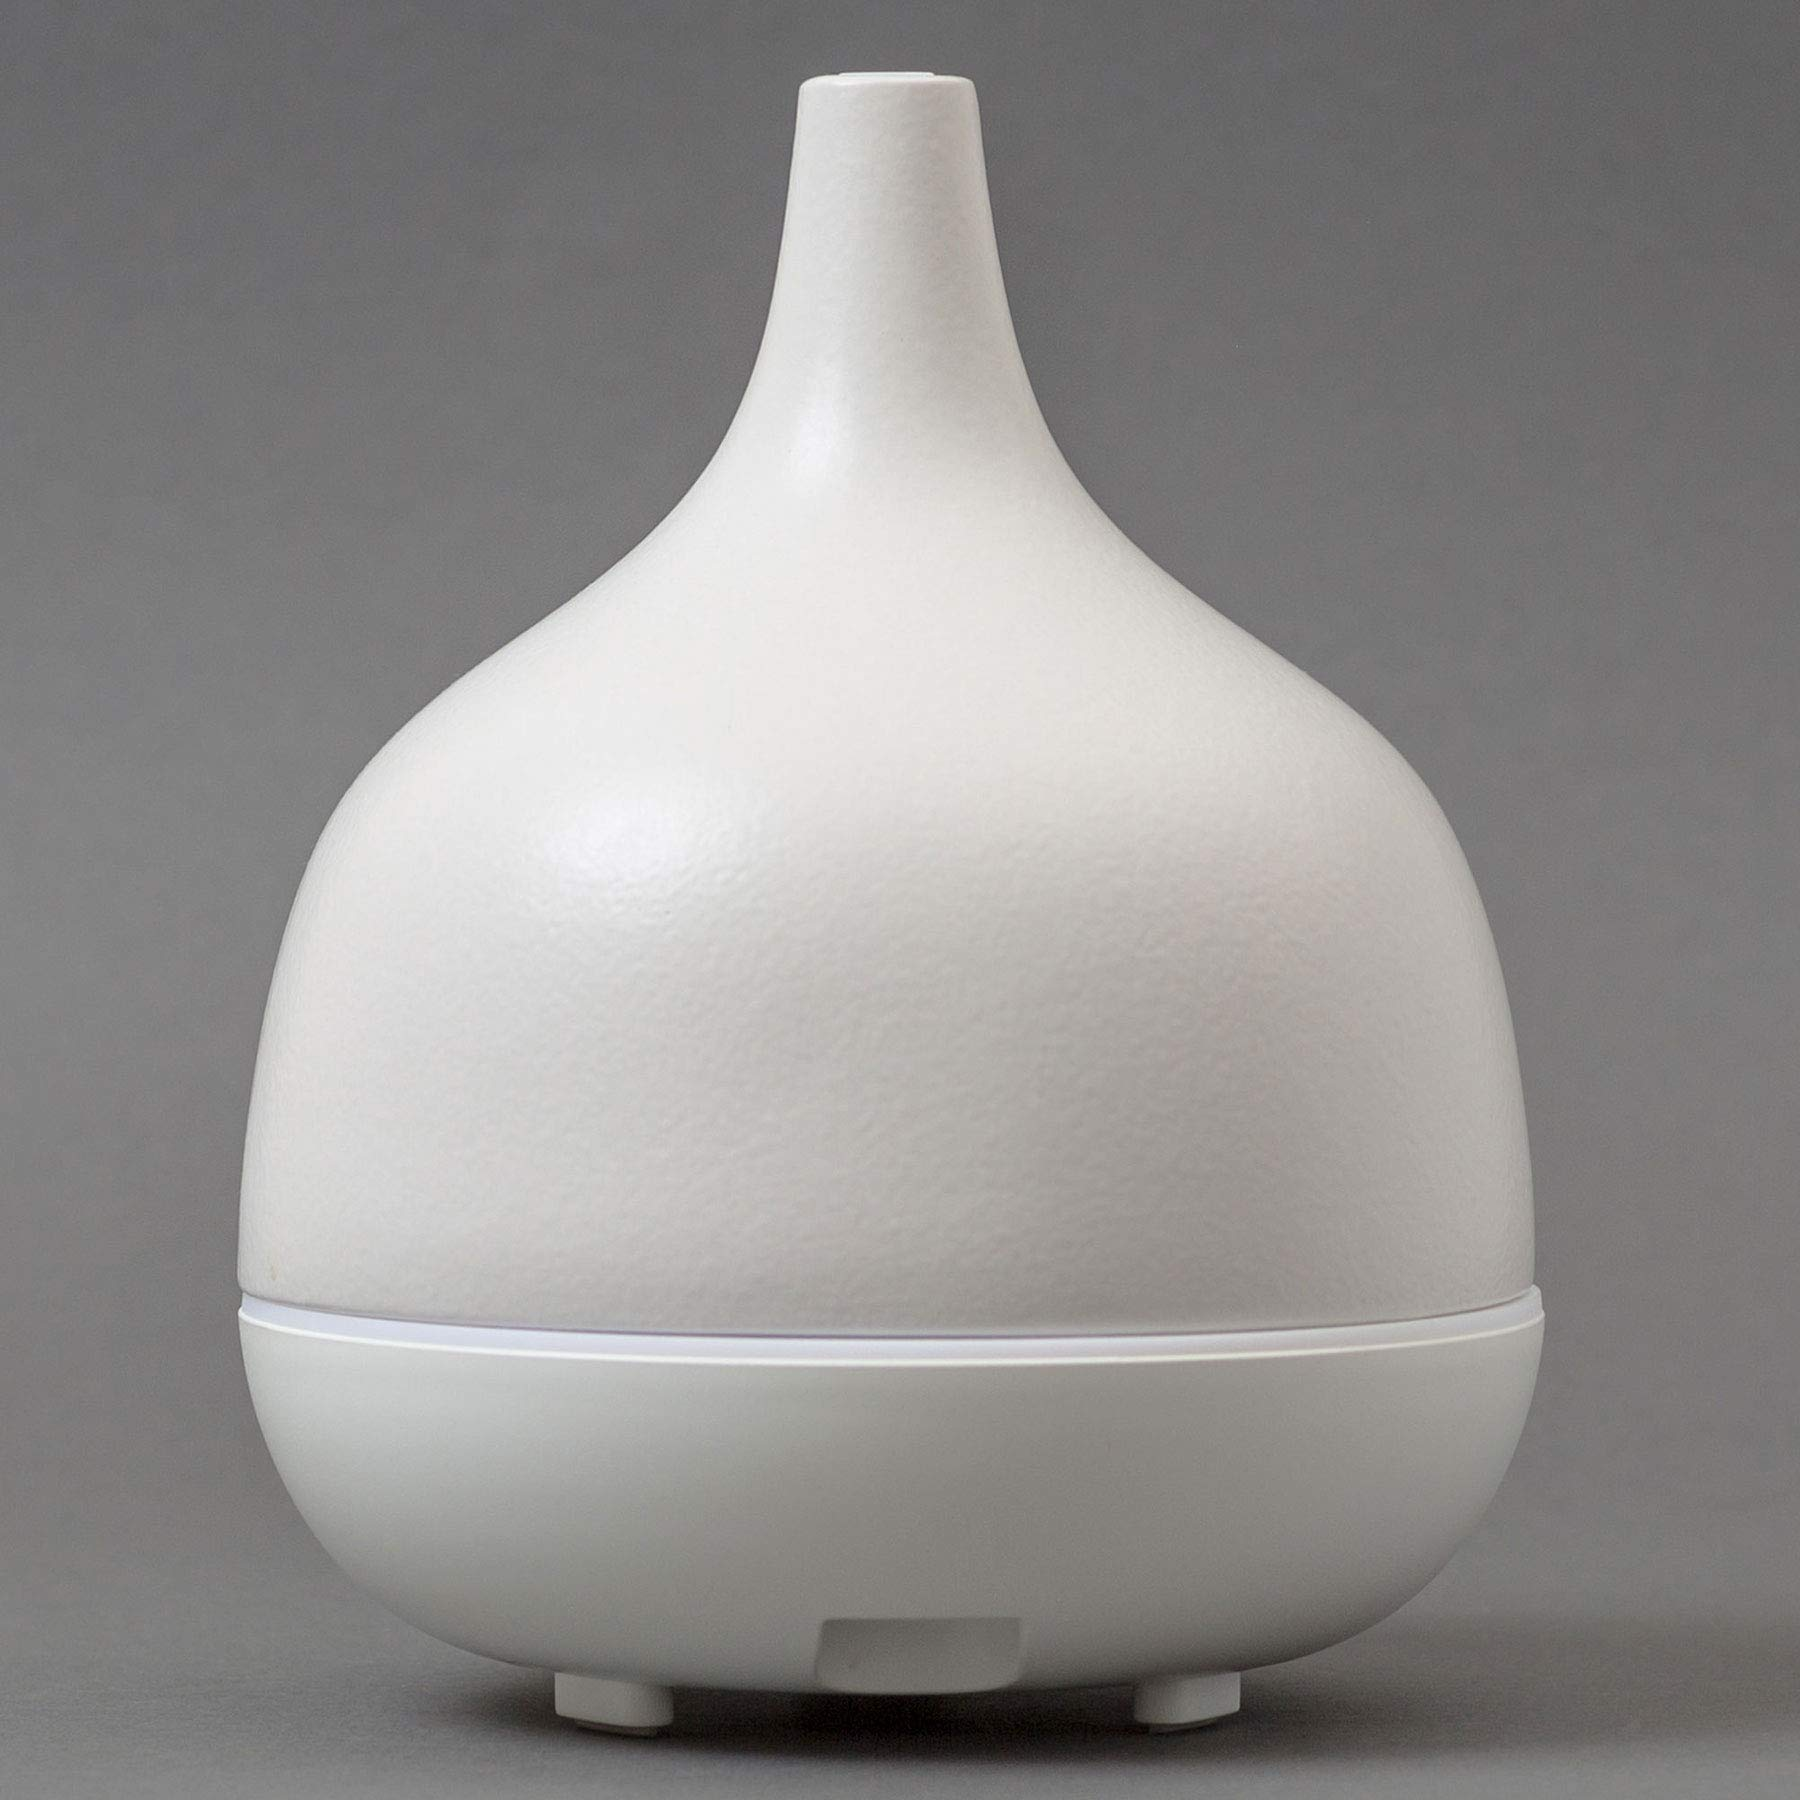 Hand-Crafted Ceramic Stone Ultrasonic Essential Oil Diffuser for Aromatherapy - 300 ml, White